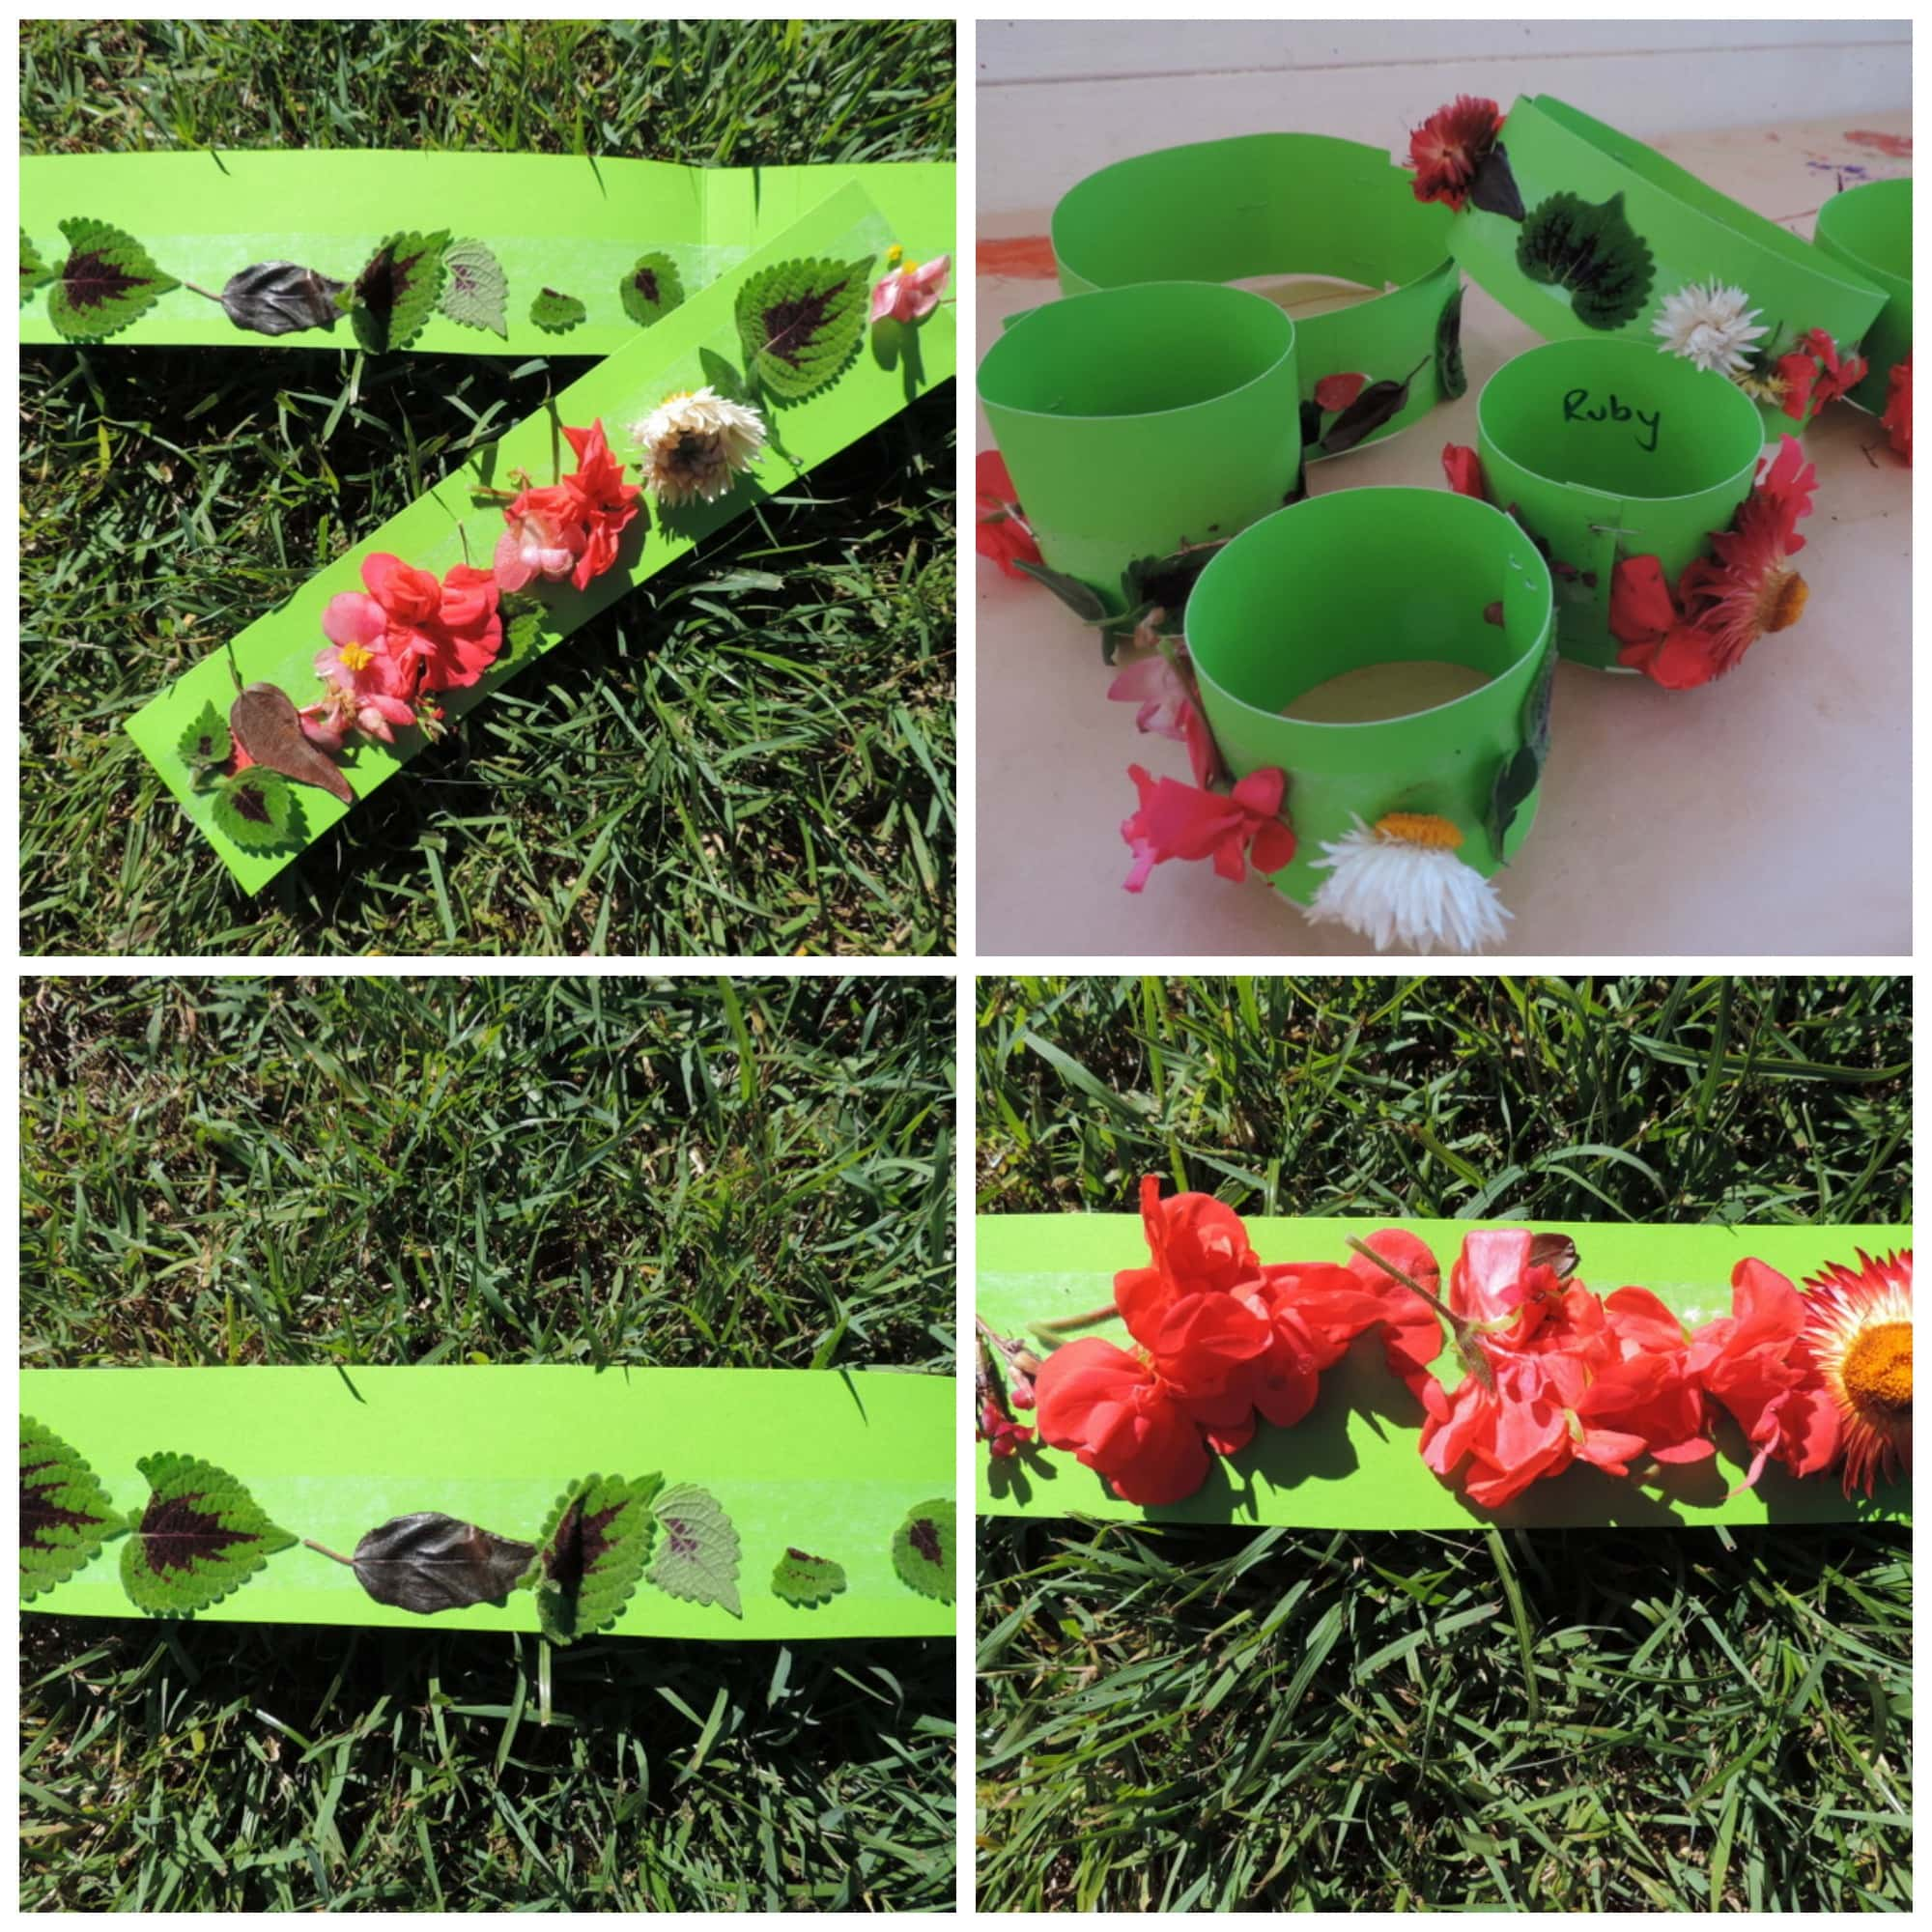 Crowns from Nature - an easy sensory activity that is also mess free! A wonderful way to incorporate natural materials into play and learning! See more at Mummy Musings and Mayhem.